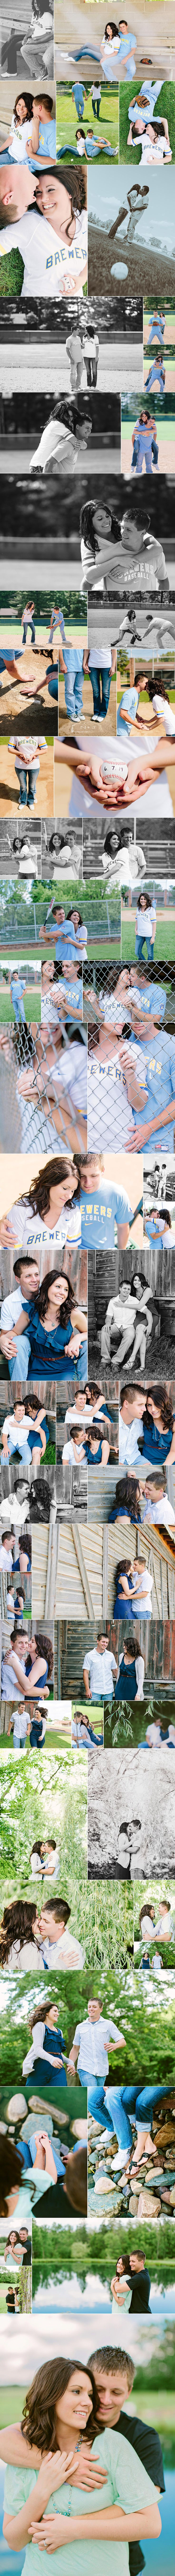 best 25 baseball engagement photos ideas on pinterest baseball